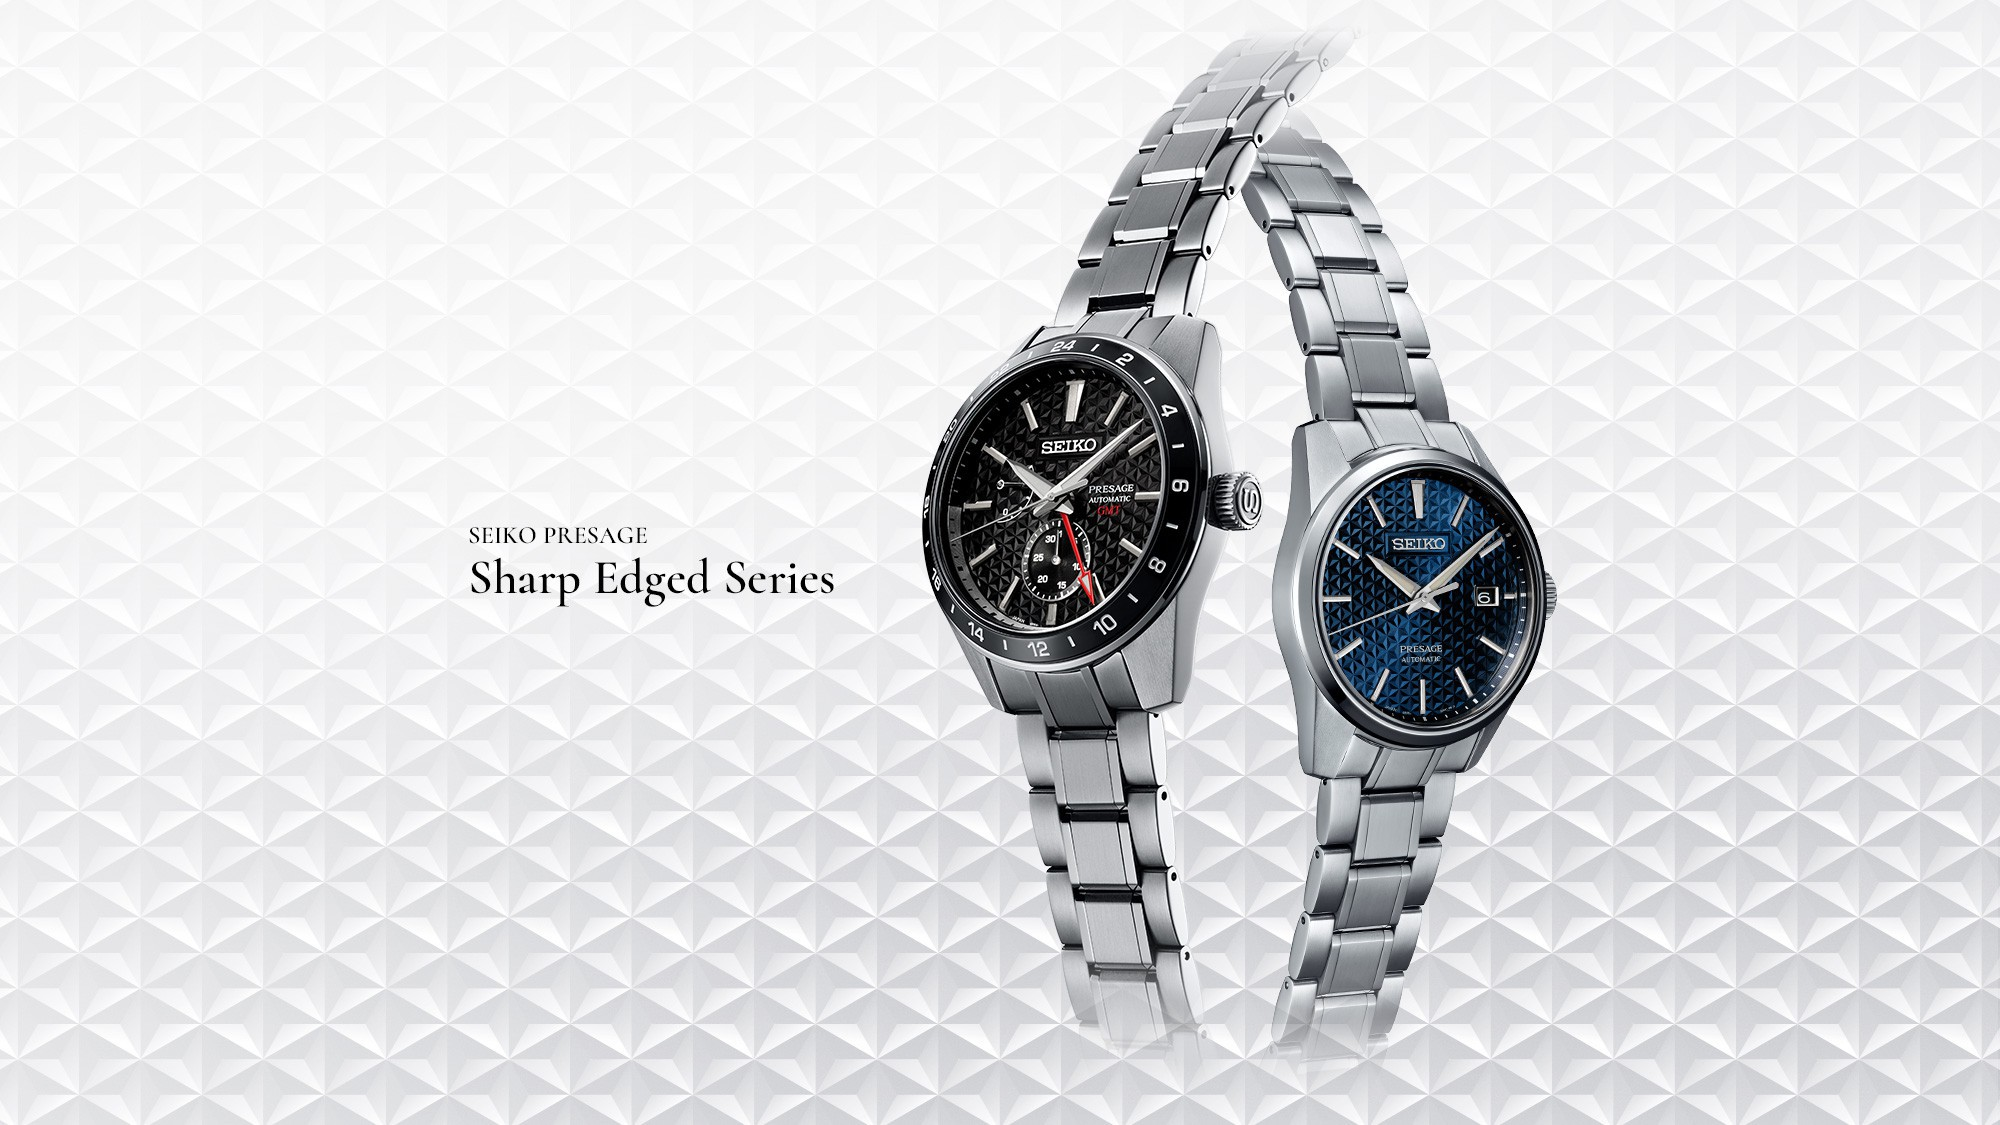 Seiko Watch Always One Step Ahead Of The Rest